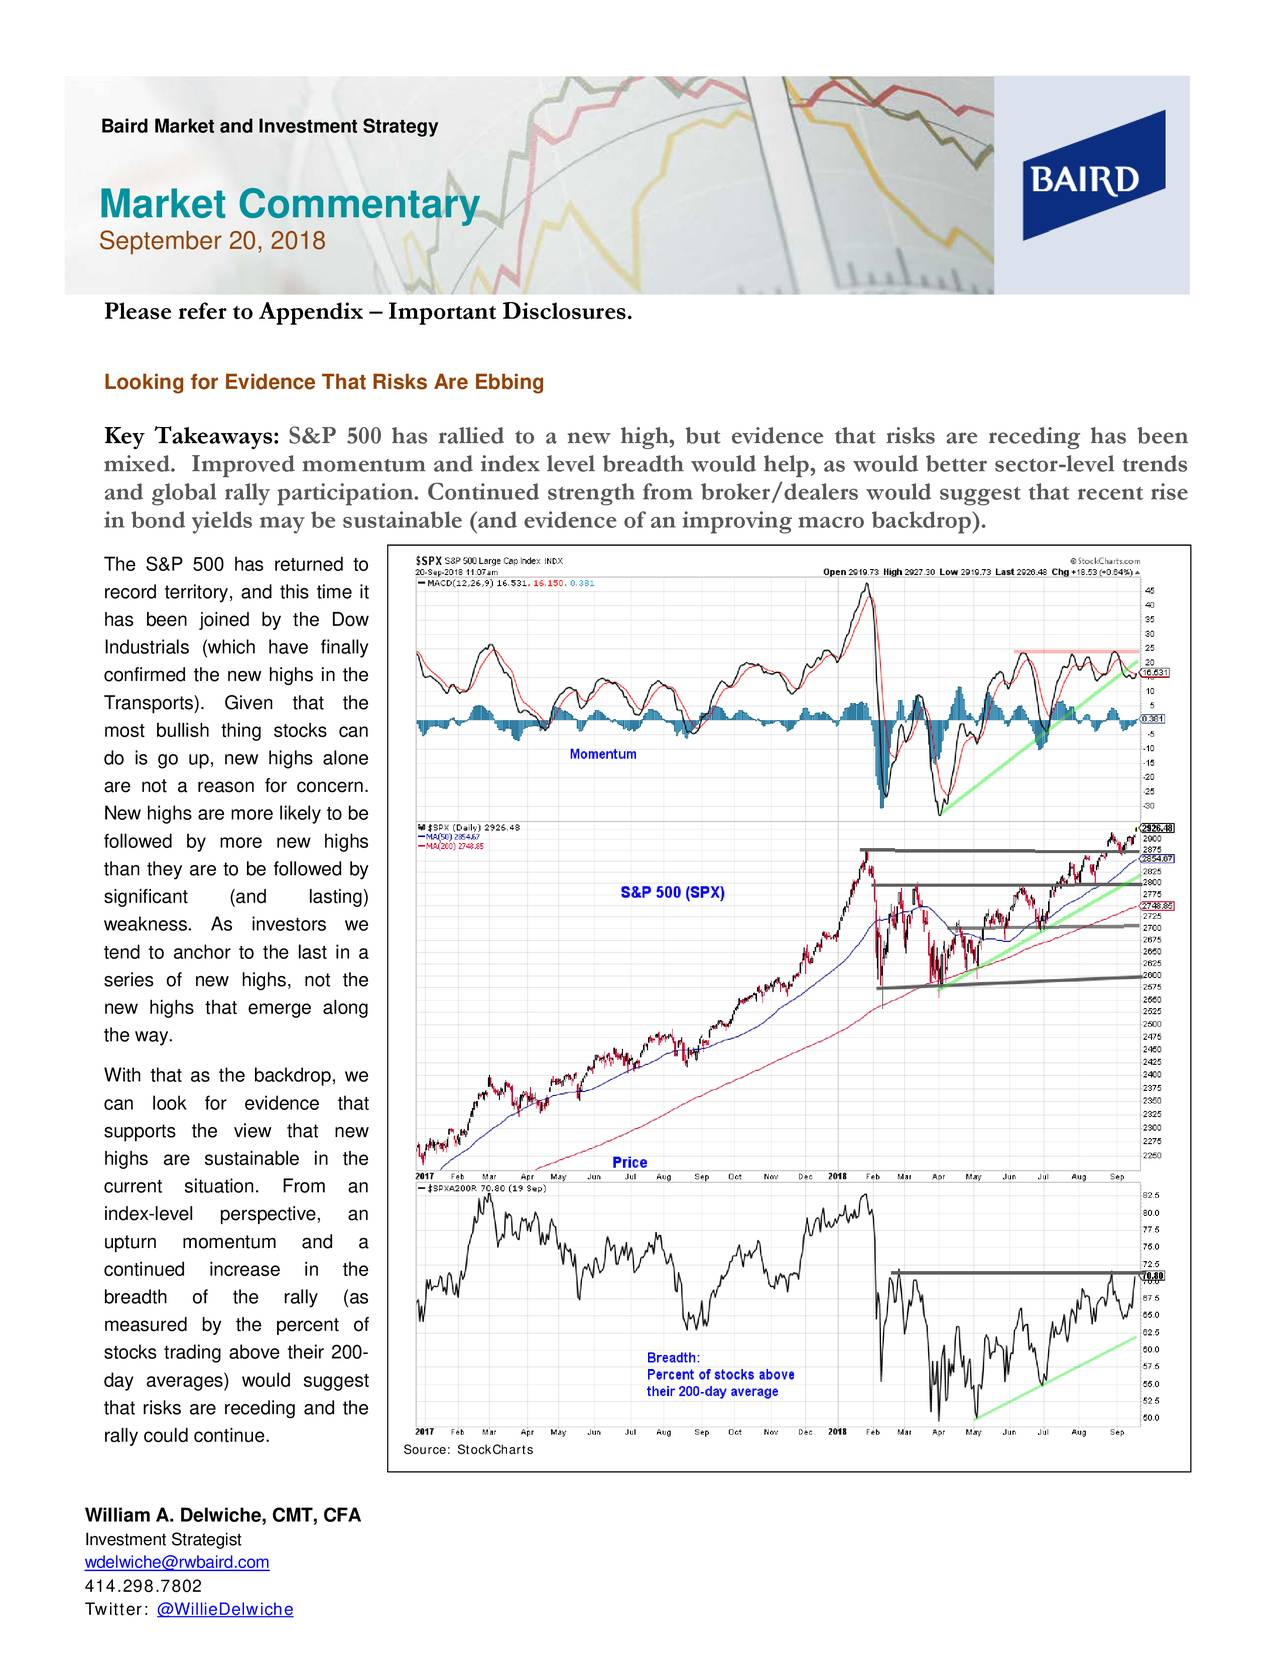 Market Commentary September 20, 2018 Please refer to Appendix – Important Disclosures. Looking for Evidence That Risks Are Ebbing Key Takeaways: S&P 500 has rallied to a new high, but evidence that risks are receding has been mixed. Improved momentum and index level breadth would help, as would better sector -level trends and global rally participation. Continued strength from broker/dea lers would suggest that recent rise in bond yields may be sustainable (and evidence of an improving macro backdrop). The S& P 500 has returned to record territory, and this time it has been joined by the Dow Industrials (which have finally confirmed the new highs in the Transports). Given that the most bullish thing stocks can do is go up, new highs alone are not a reason for c oncern. New highs are more likely to be followed by more new highs than they are to be followed by significant (and lasting) weakness. As investors we tend to anchor to the last in a series of new highs, not the new highs that emerge along the way. With that as the back drop, we can look for evidence that supports the view that new highs are sustainable in the current situation. From an index-level perspective, an upturn momentum and a continued increase in the breadth of the rally (as measured by the percent of stocks trading above their 200- day averages) would suggest that risks are receding and the rally could continue. Source: StockCharts William A. Delwiche, CMT, CFA Investment Strategist wdelwiche@rwbaird.com 414.298.7802 Twitter: @WillieDelwiche